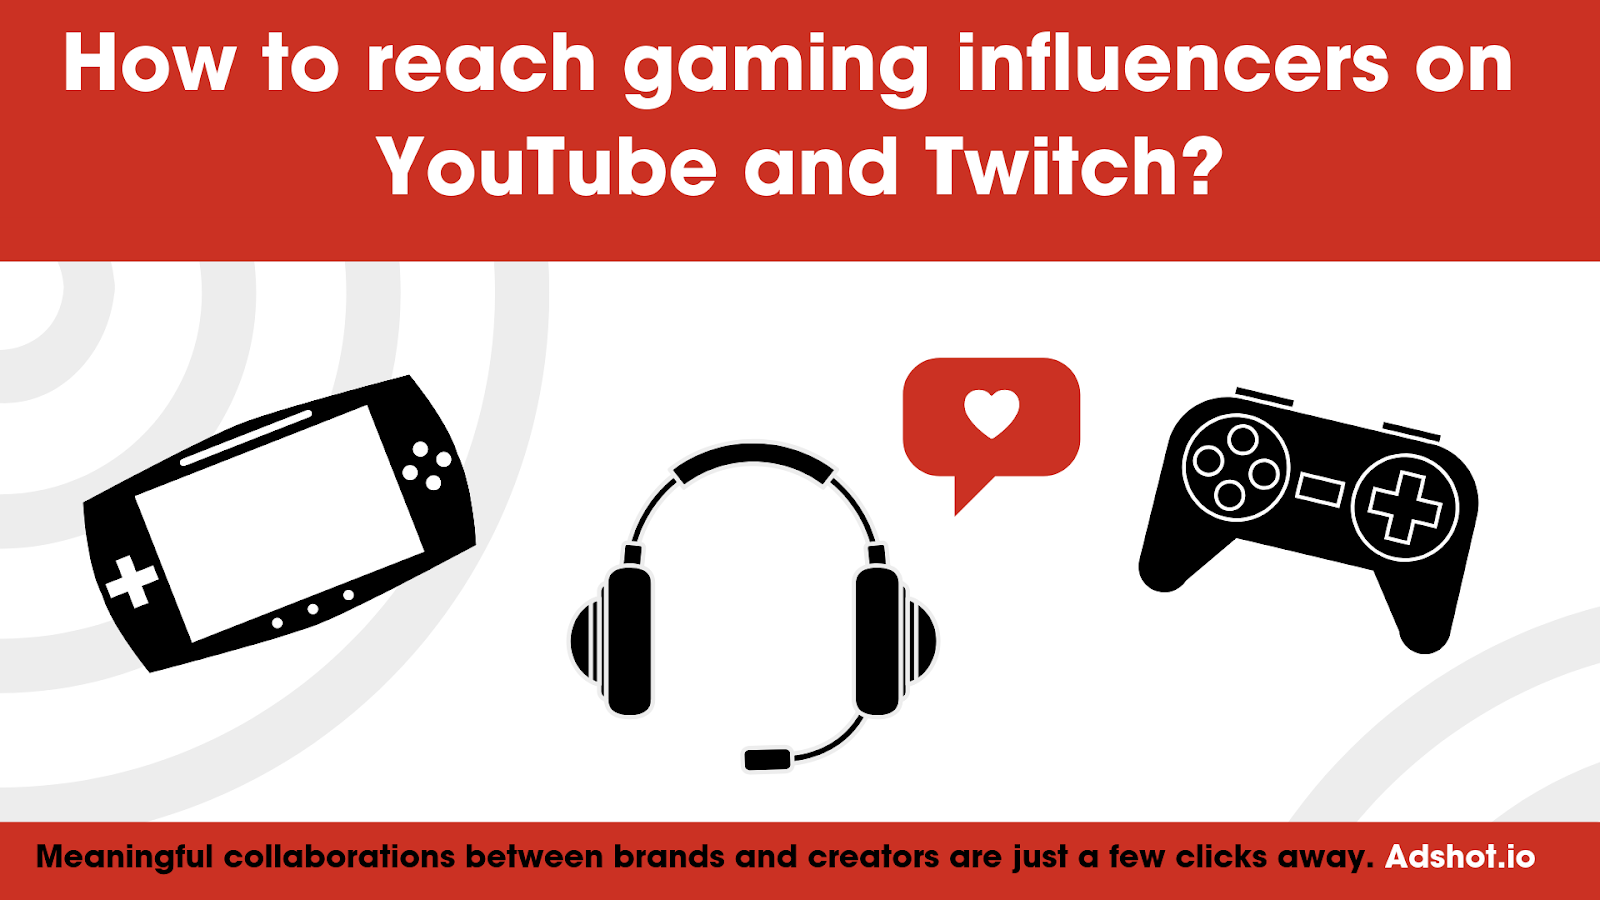 How to reach gaming influencers on YouTube and Twitch